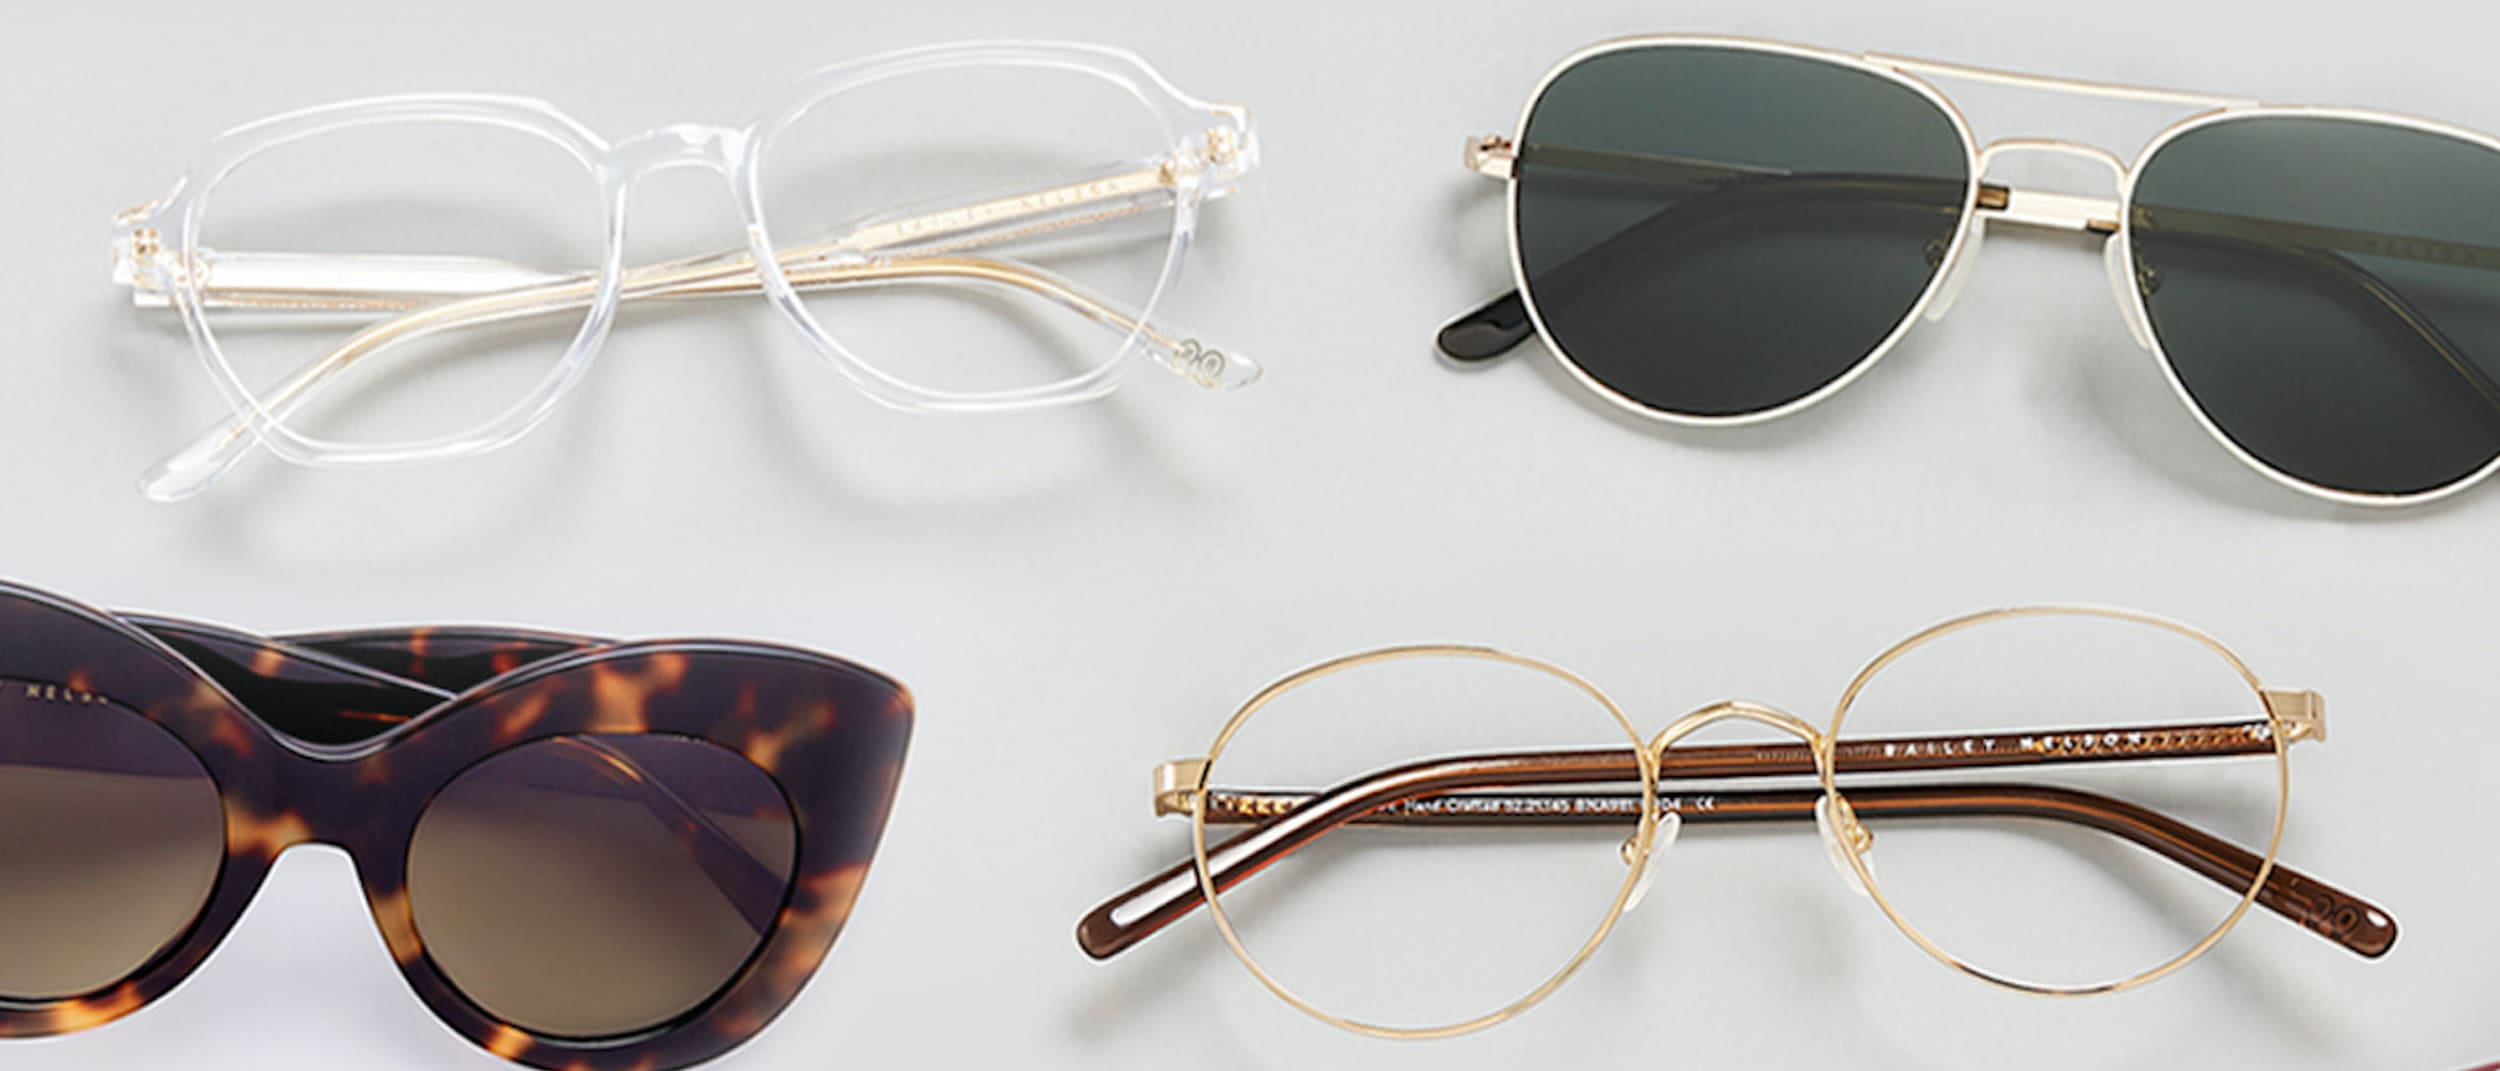 Bailey Nelson: Complete glasses for $80